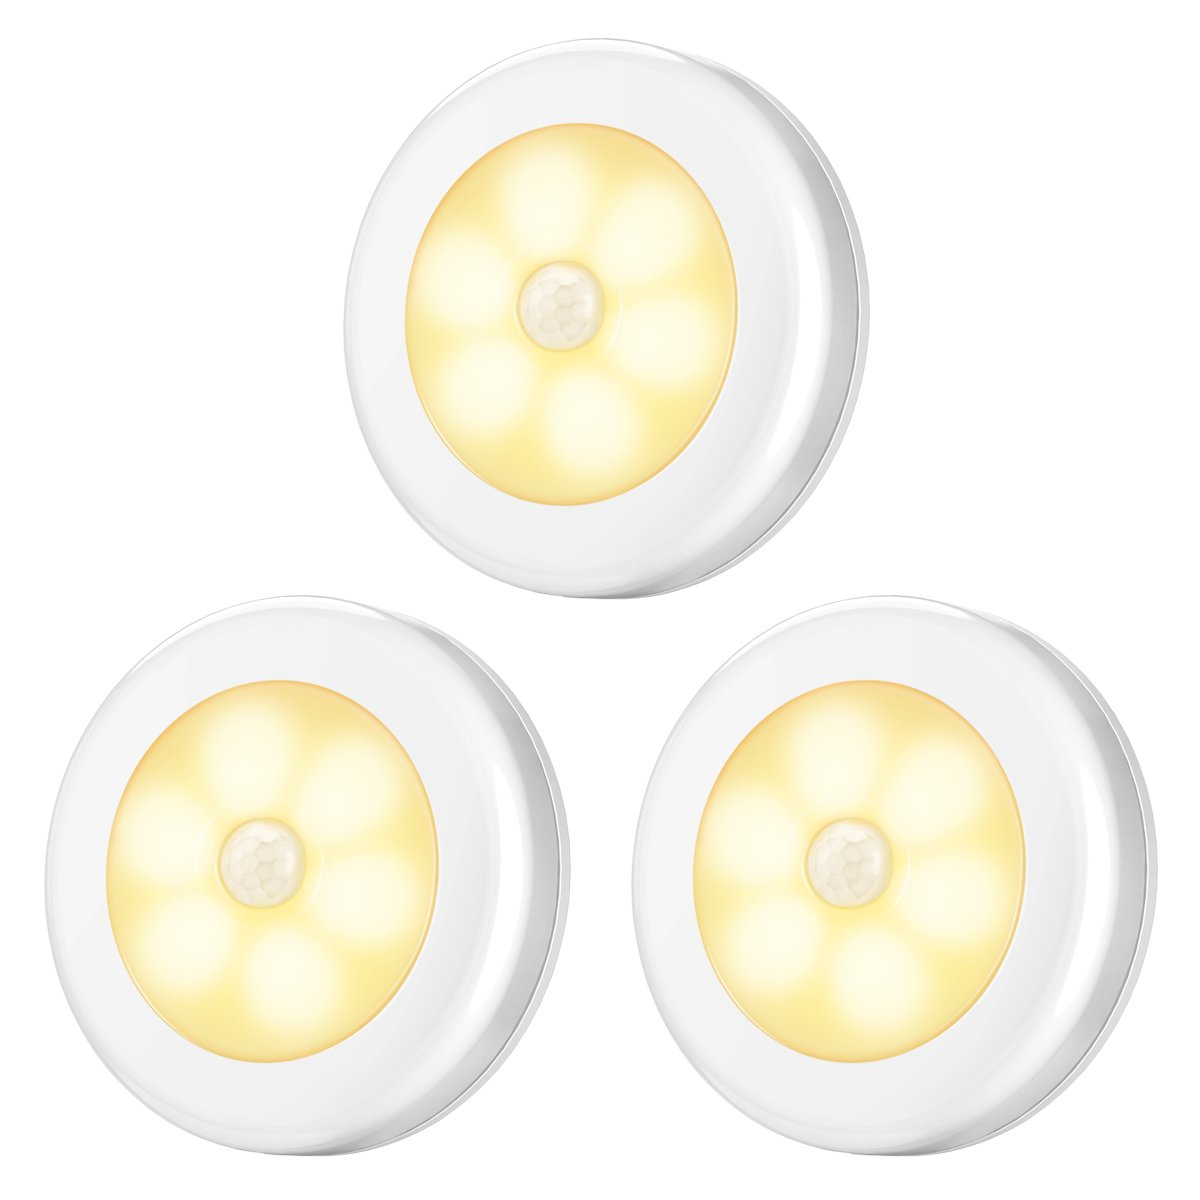 AMIR Motion Sensor Light, Cordless Battery-Powered LED Night Light, Stick-anywhere Closet Lights Stair Lights, Safe Lights for Hallway, Bathroom, Bedroom, Kitchen, etc. (Warm White - Pack of 3)